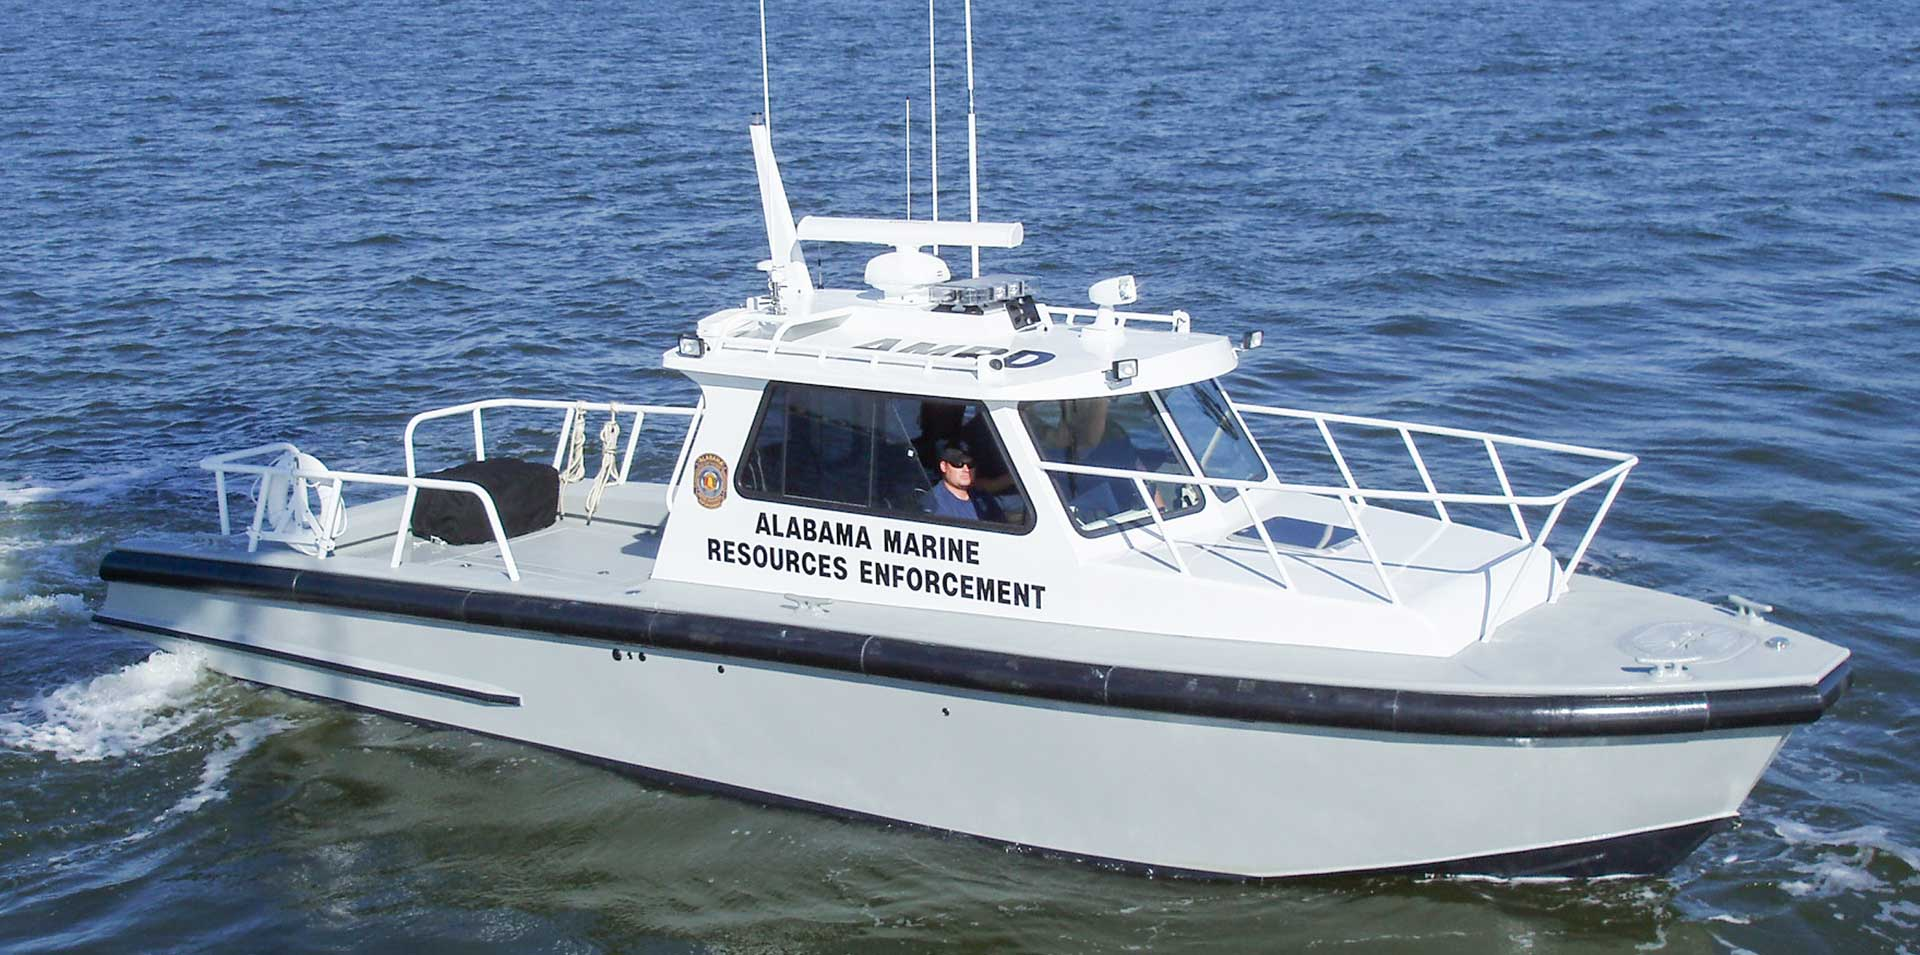 Silver Ships Endeavor Series law enforcement boat